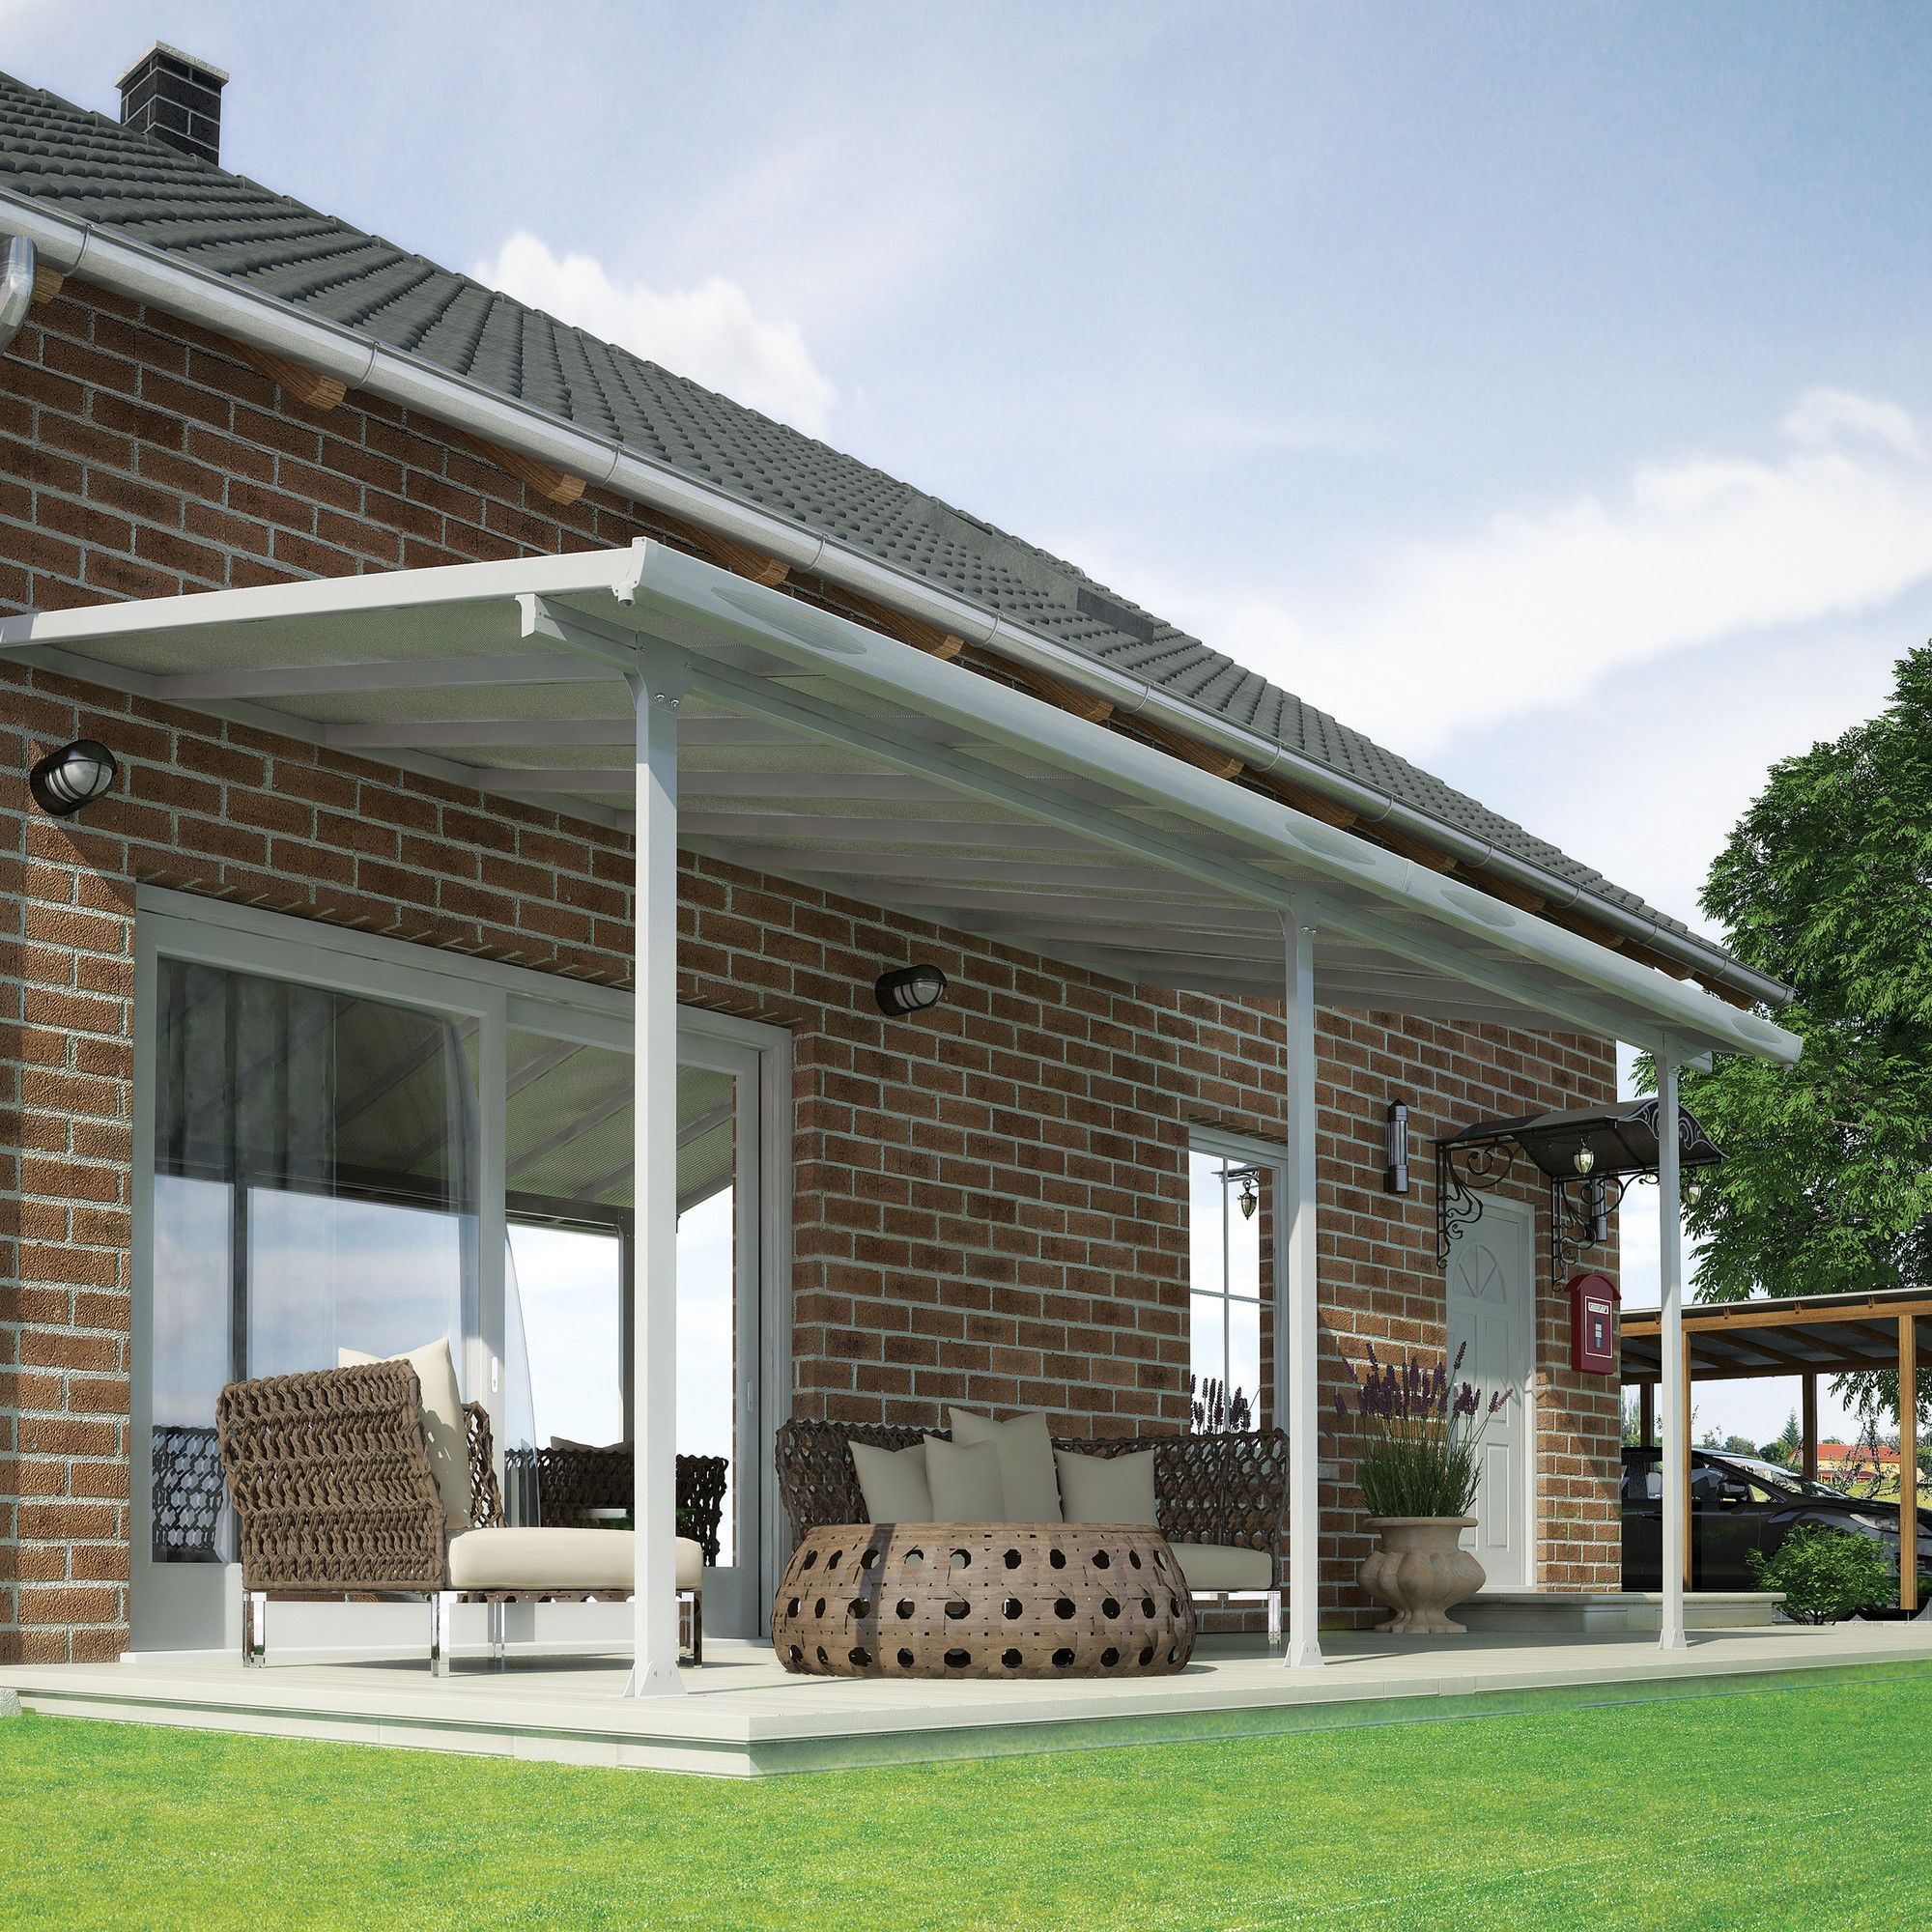 Store Vertical Transparent Pour Terrasse Feria 28 Ft W X 9 5 Ft D Patio Awning